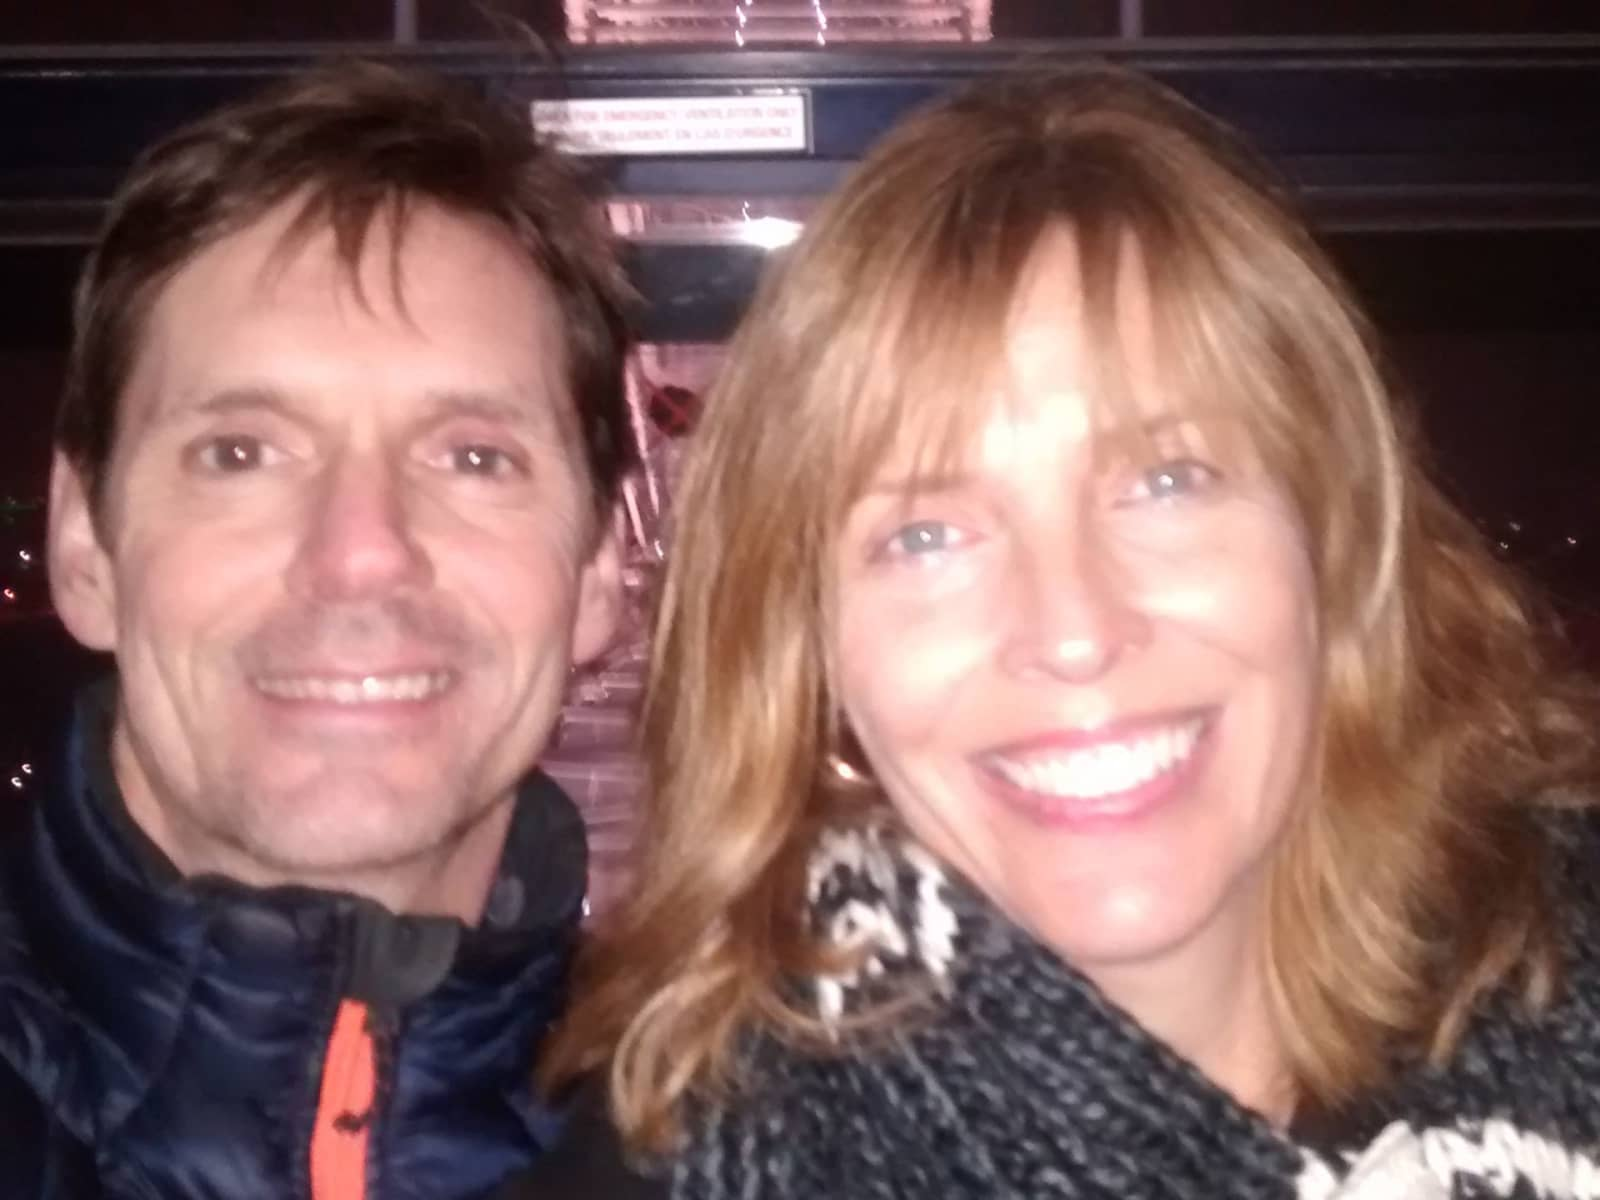 Dianne & Michael from North Bay, Ontario, Canada